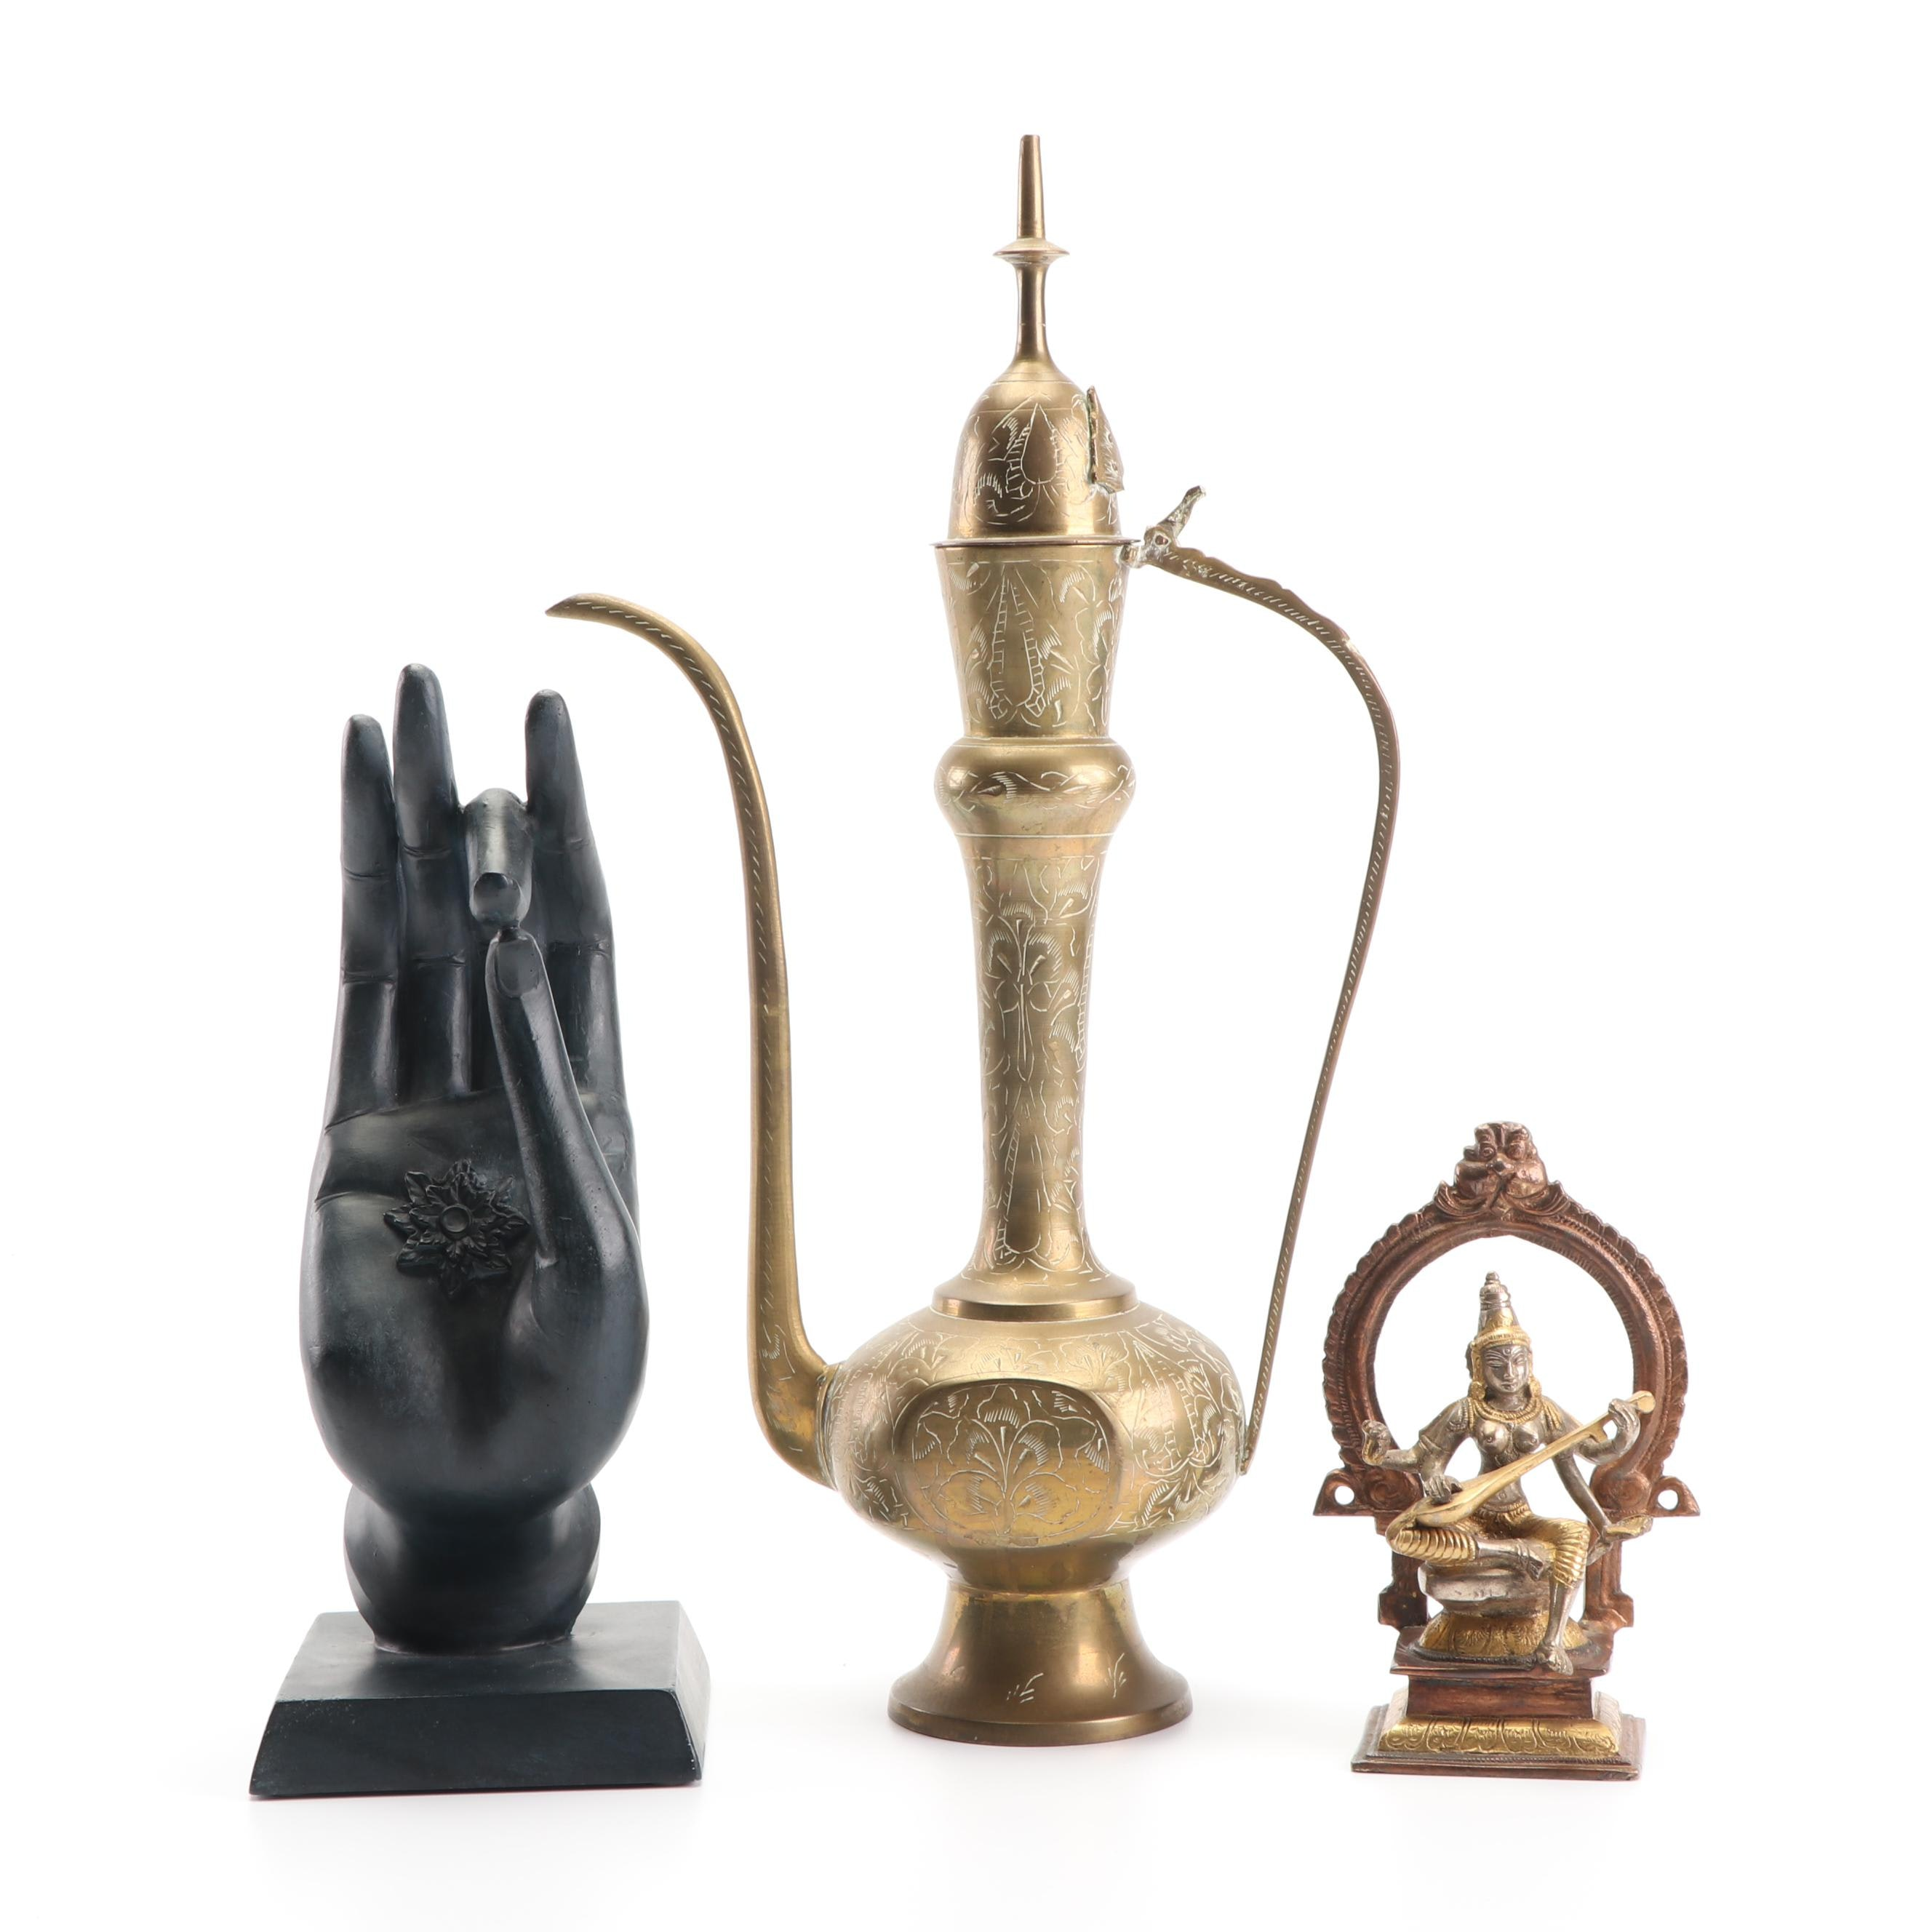 Saraswati Bronze Sculpture, Shuni Mudra Sculpture, and Persian Brass Teapot